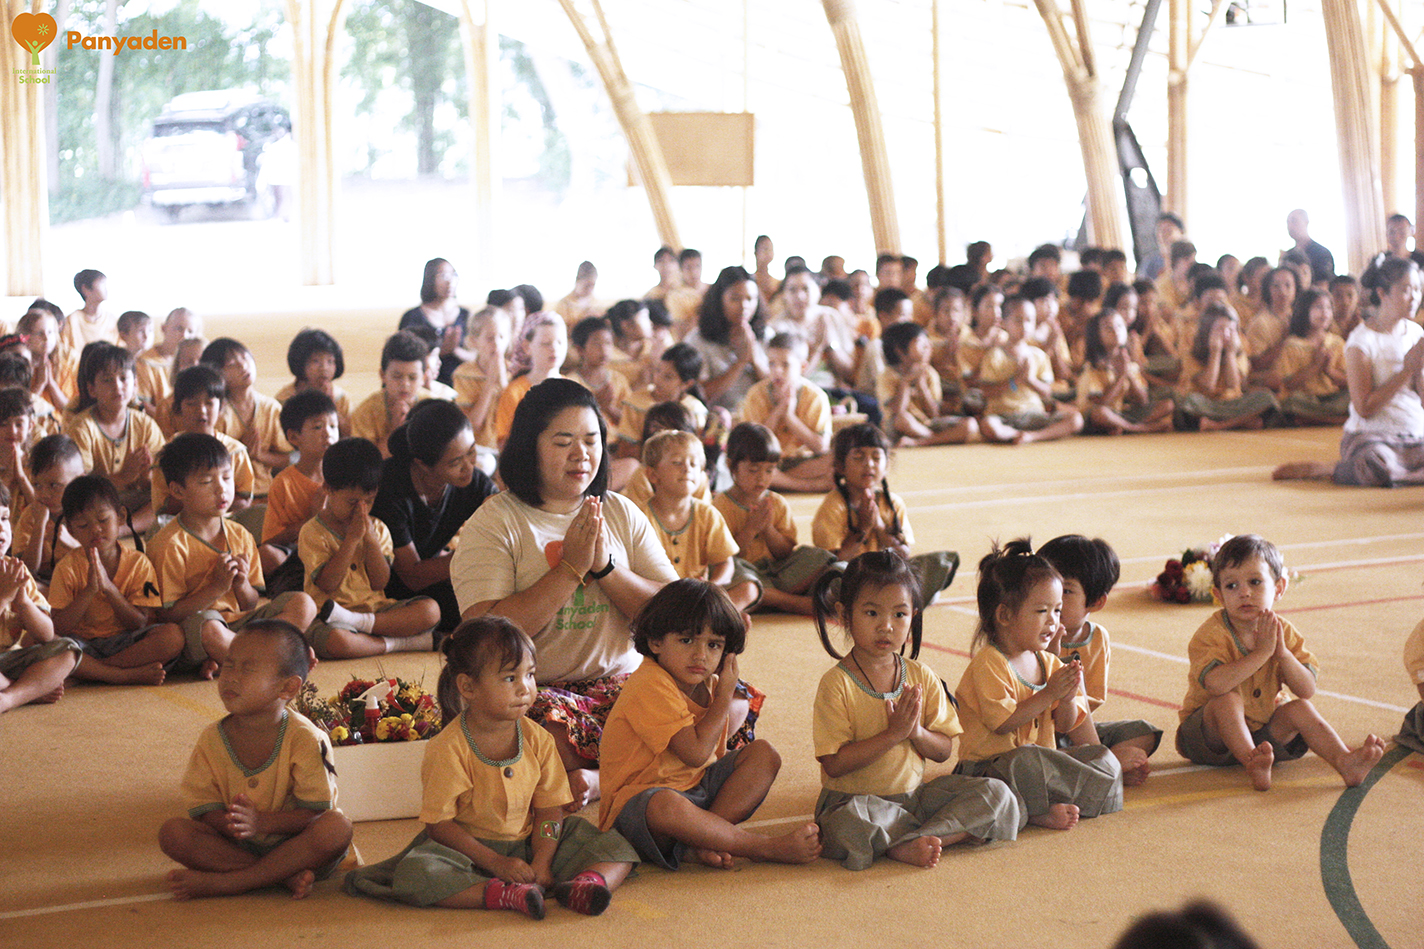 Panyaden Wai Kru Day 2017 - students paying respects in the school bamboo Sports Hall